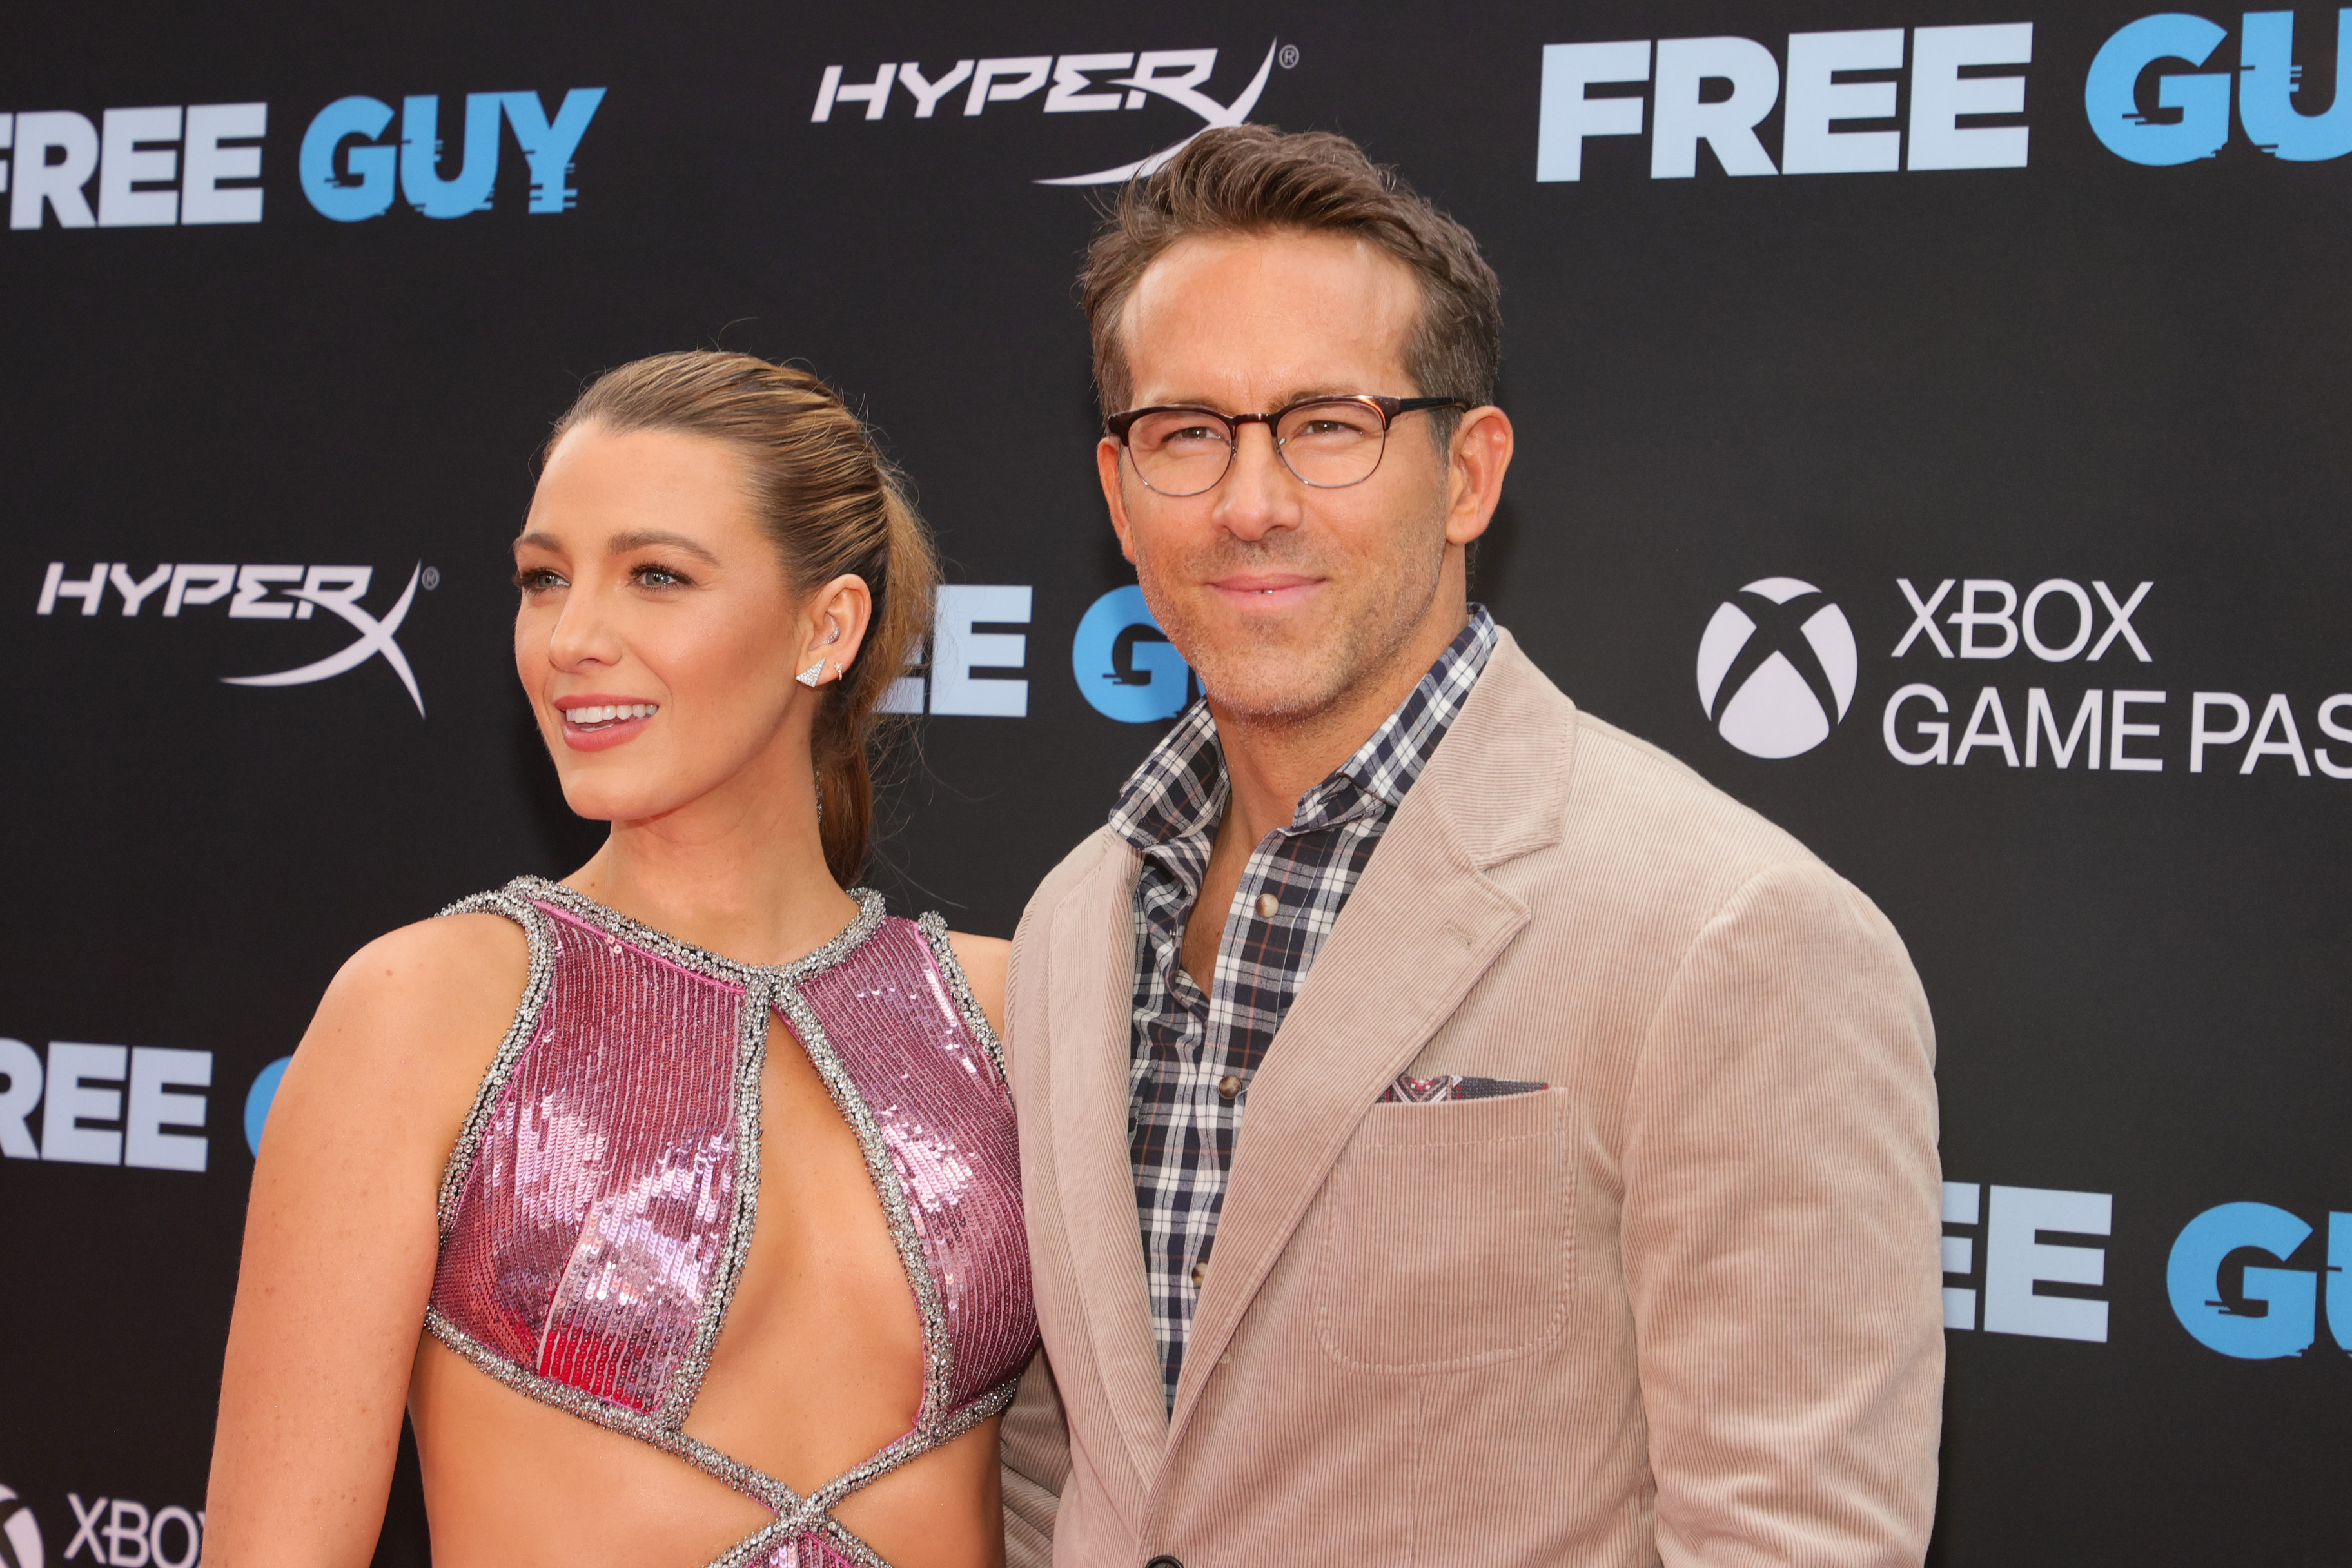 Blake Lively trolls Ryan Reynolds after he takes a 'sabbatical' from acting: 'Michael Caine did it first'